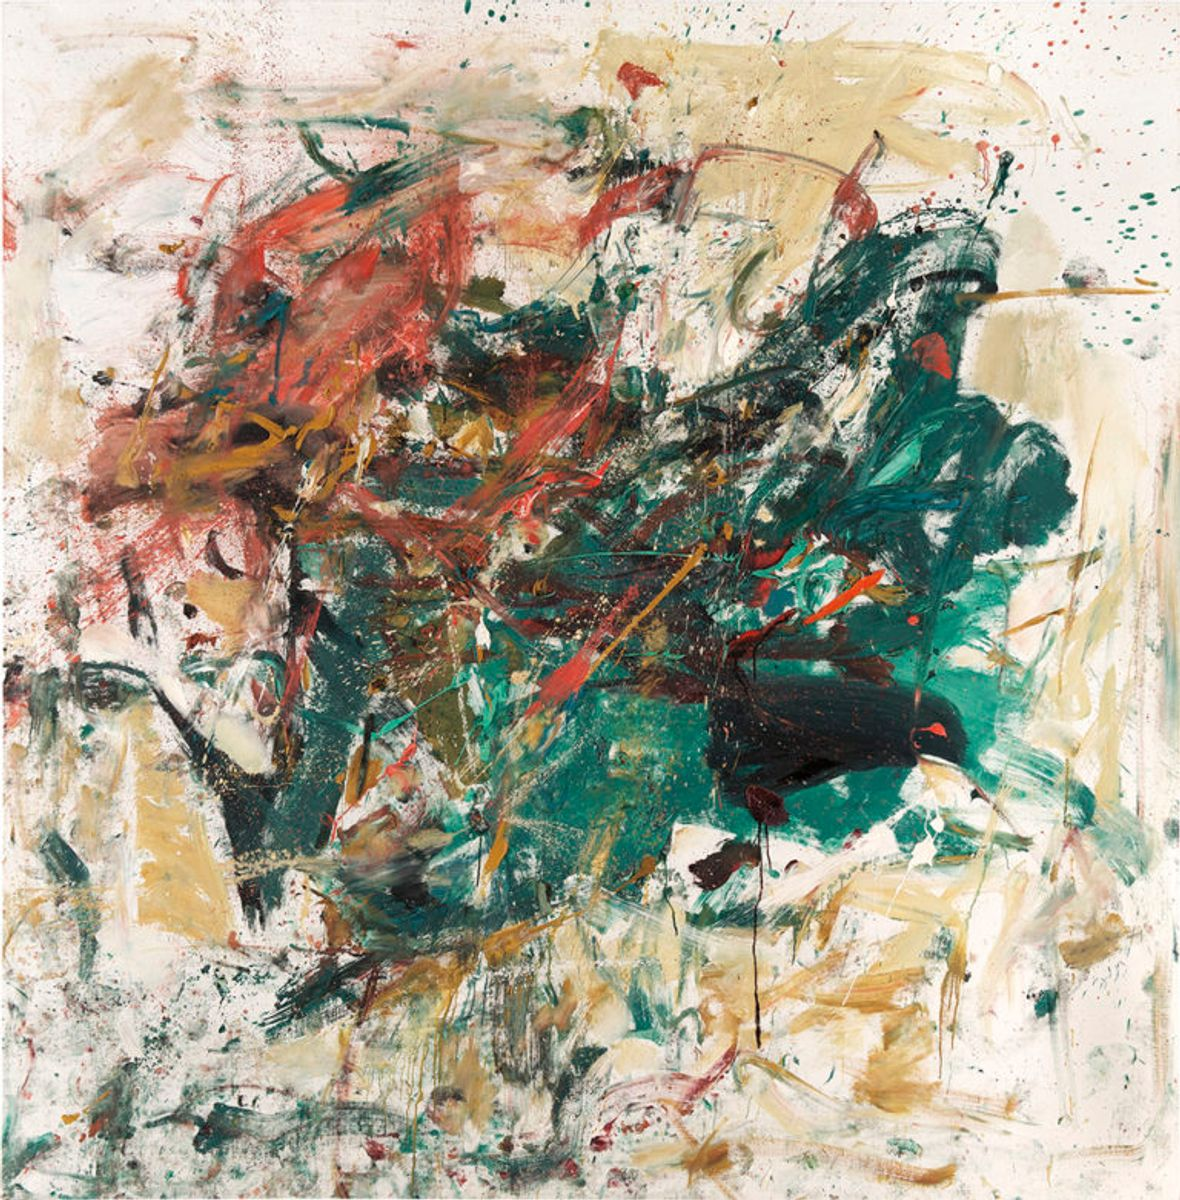 Phillips Unveils $9.5M.-$12.5M. Joan Mitchell for Evening Auction, Revealing New Date in July